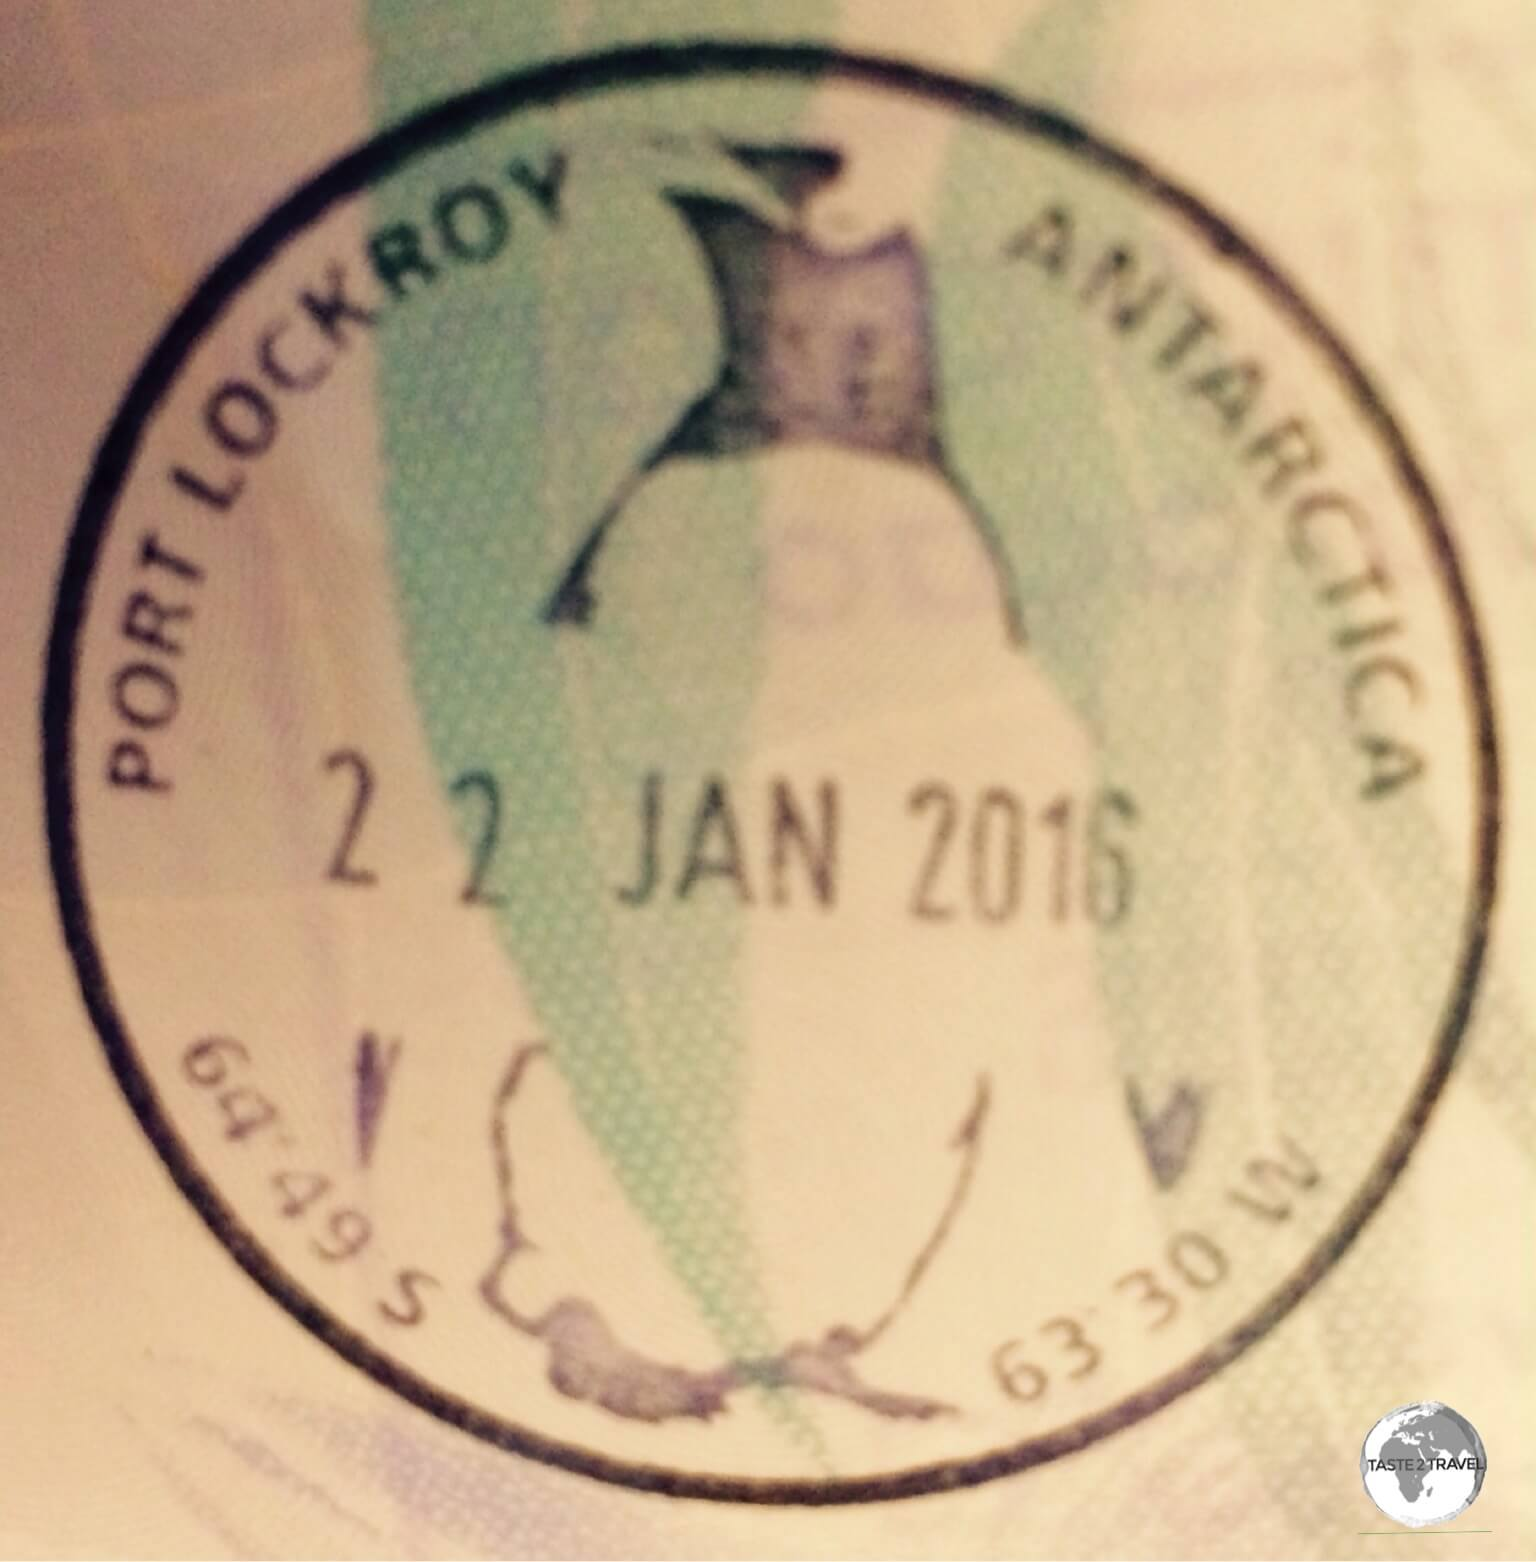 Souvenir Antarctica passport stamp from the Port Lockroy post office.